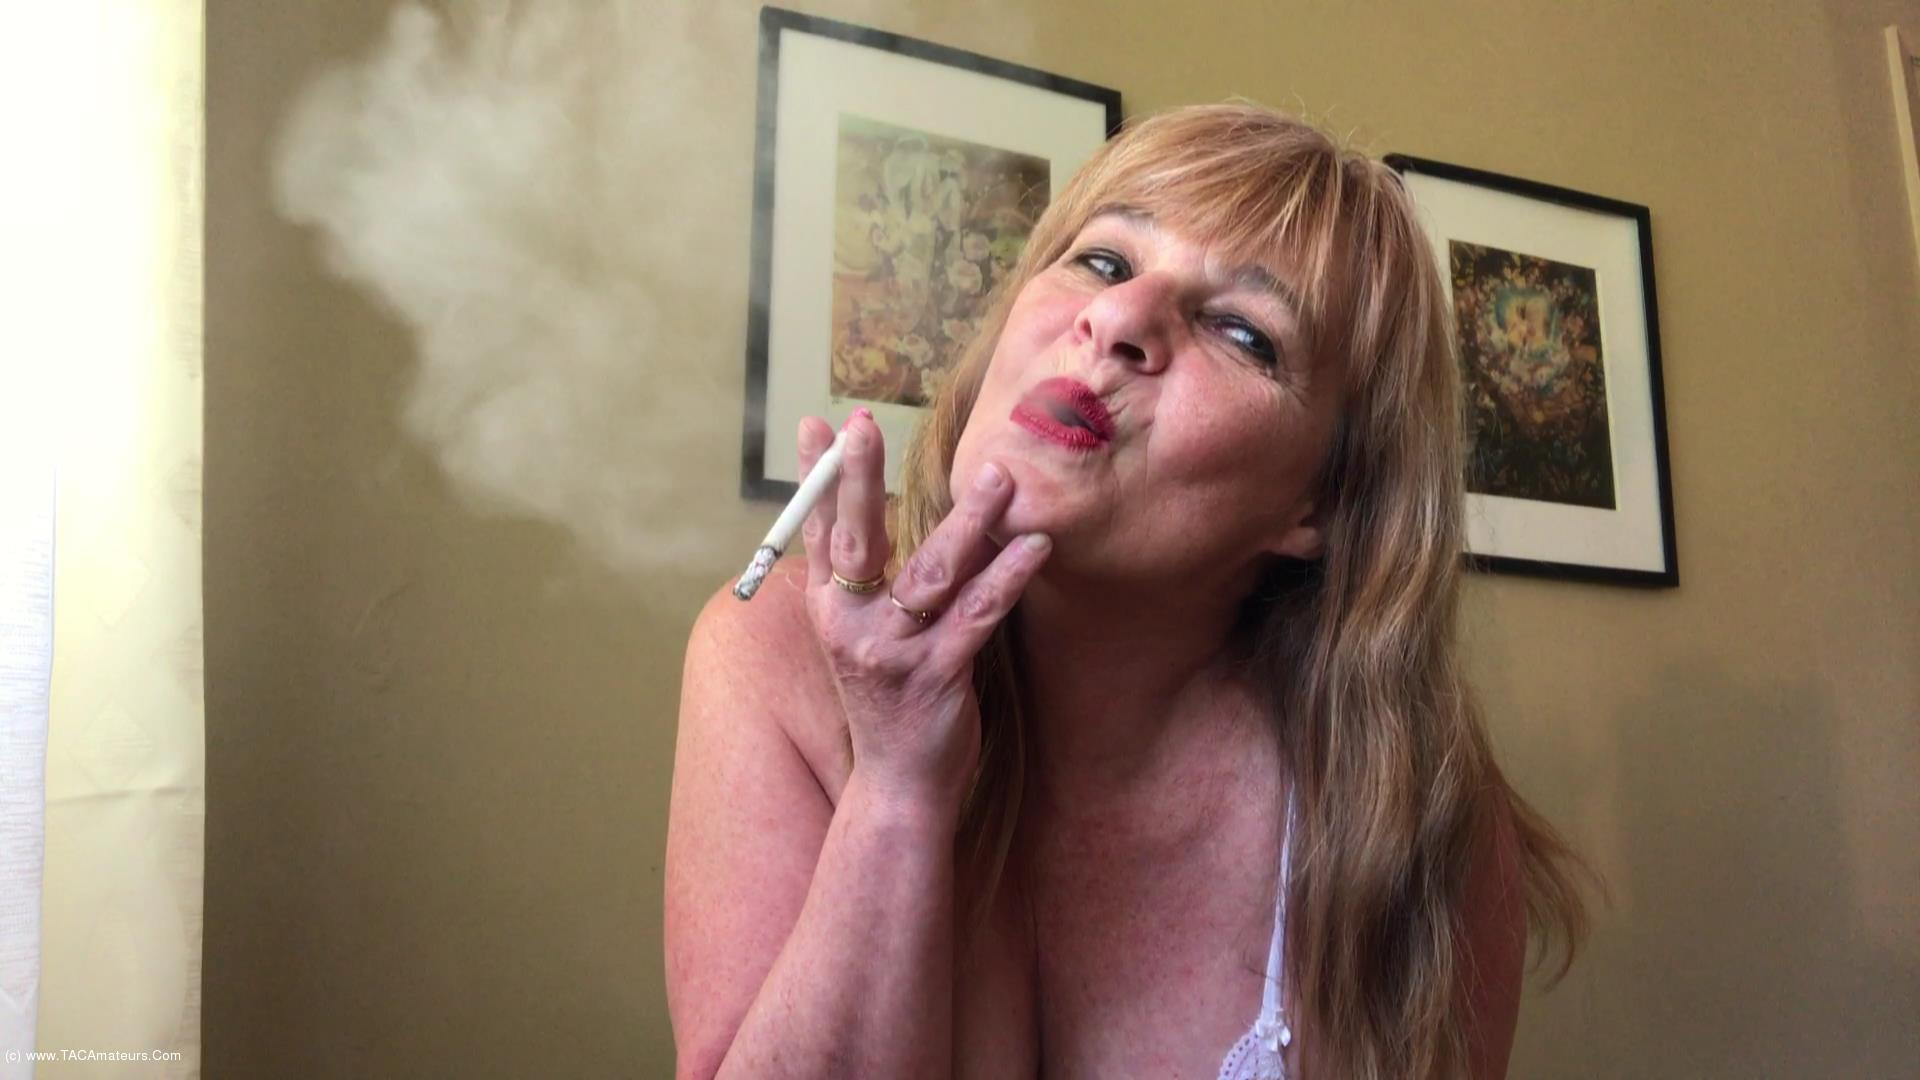 CougarBabeJolee - Smoking Flicking Ash On Your Hard Cock scene 0